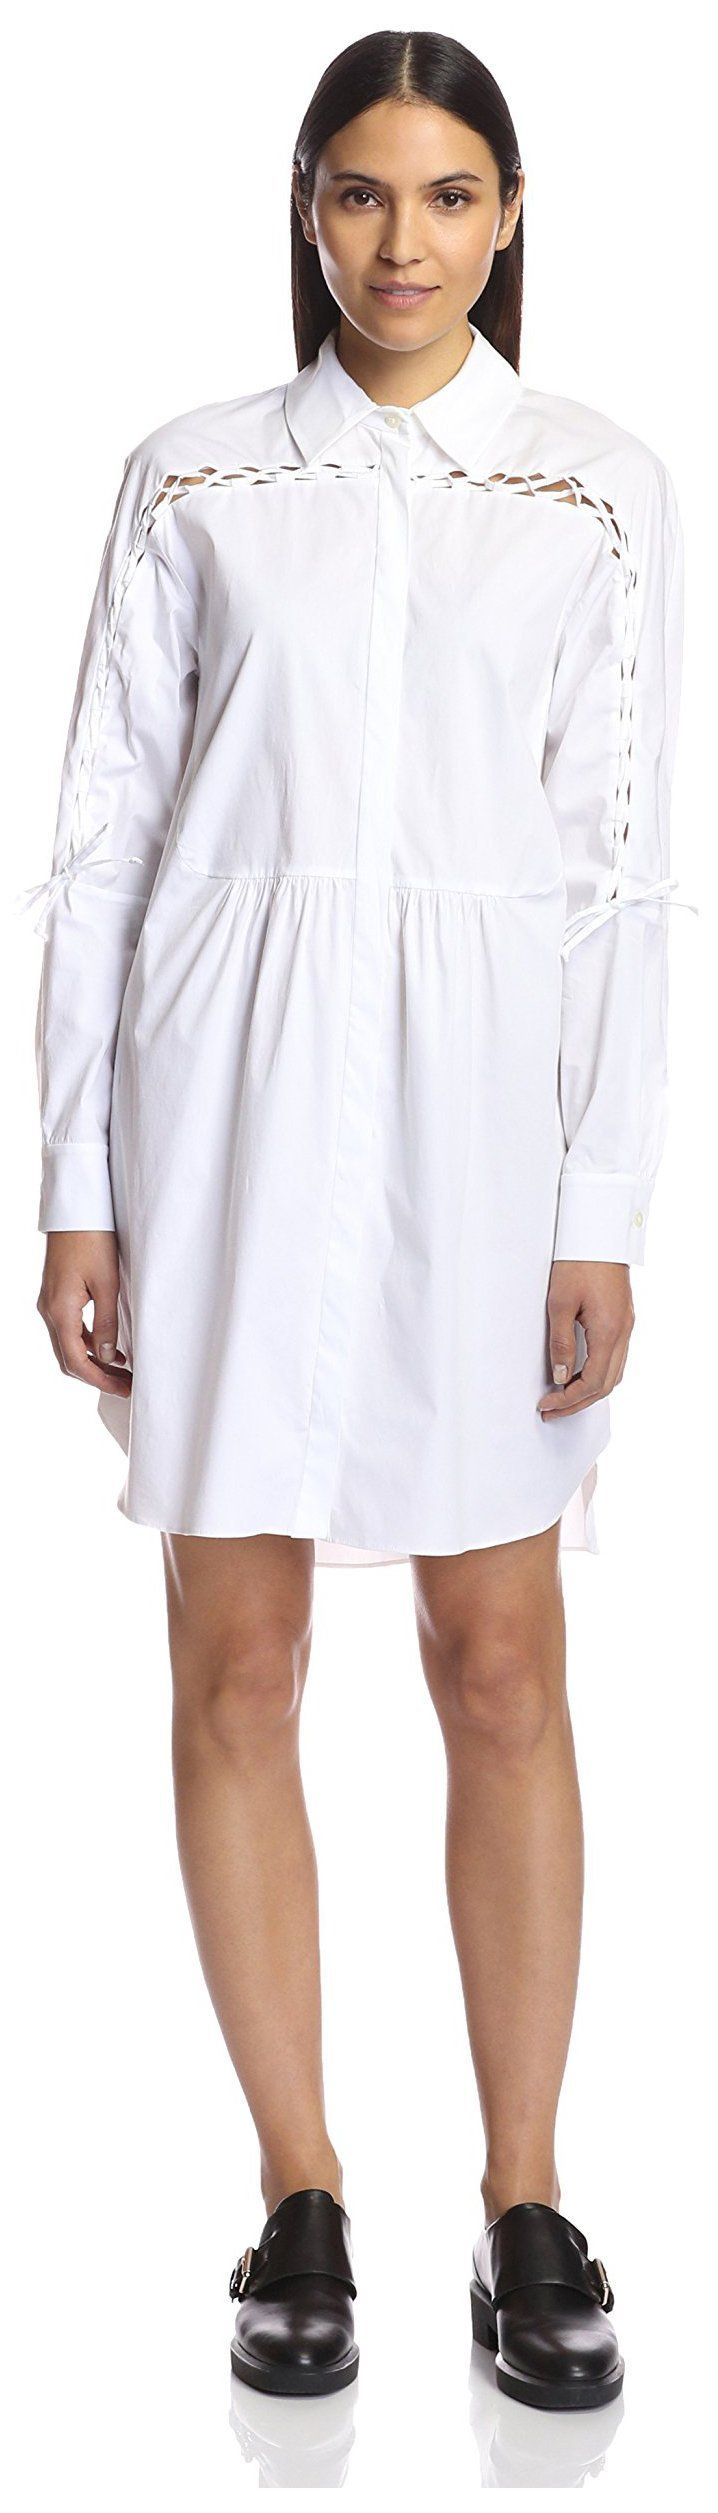 Thakoon Addition Women's Shirtdress with Lacing, White, 6 US.